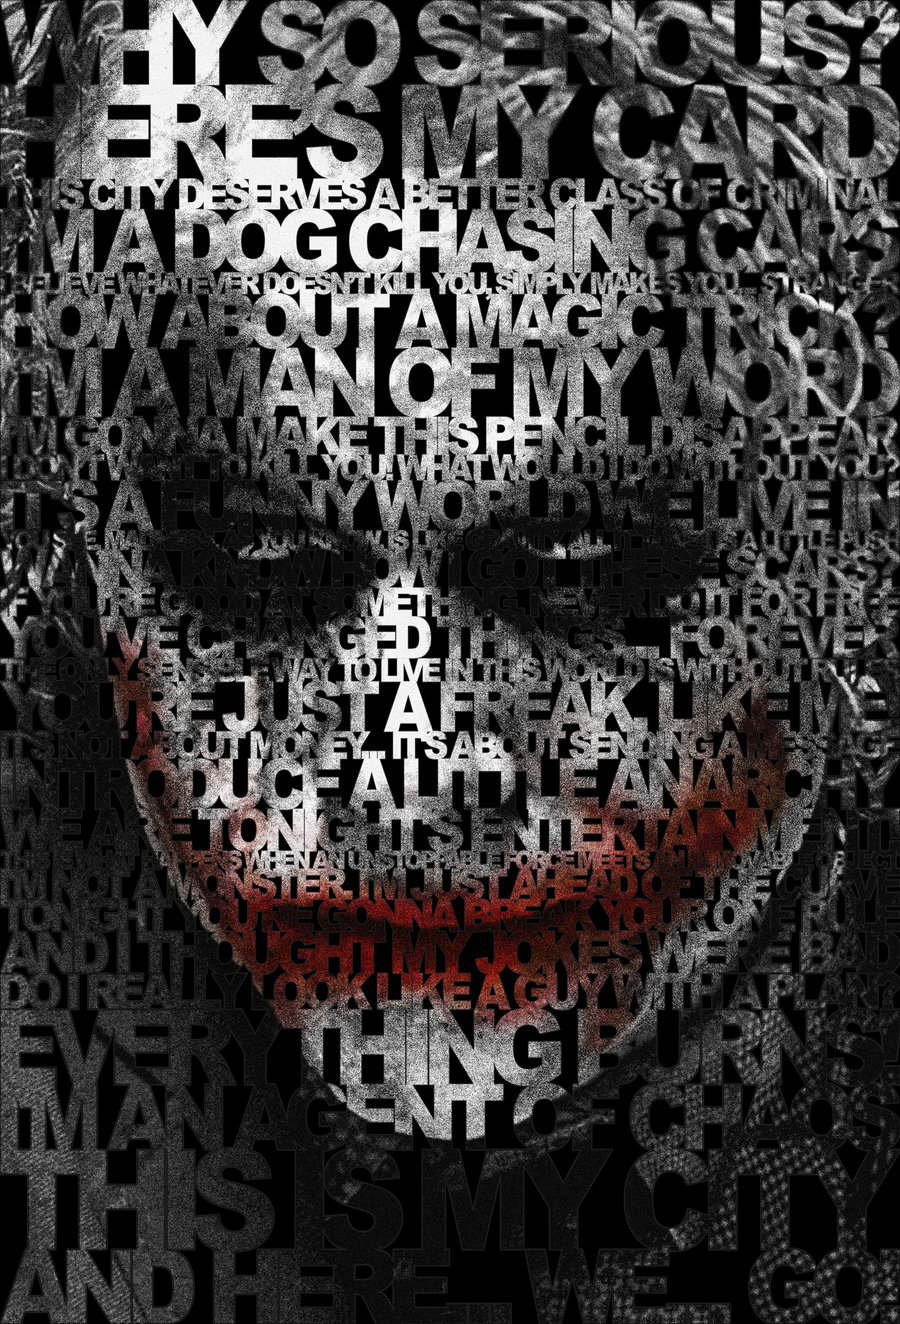 Joker S Citations Poster Le Joker Photo 28551089 Fanpop